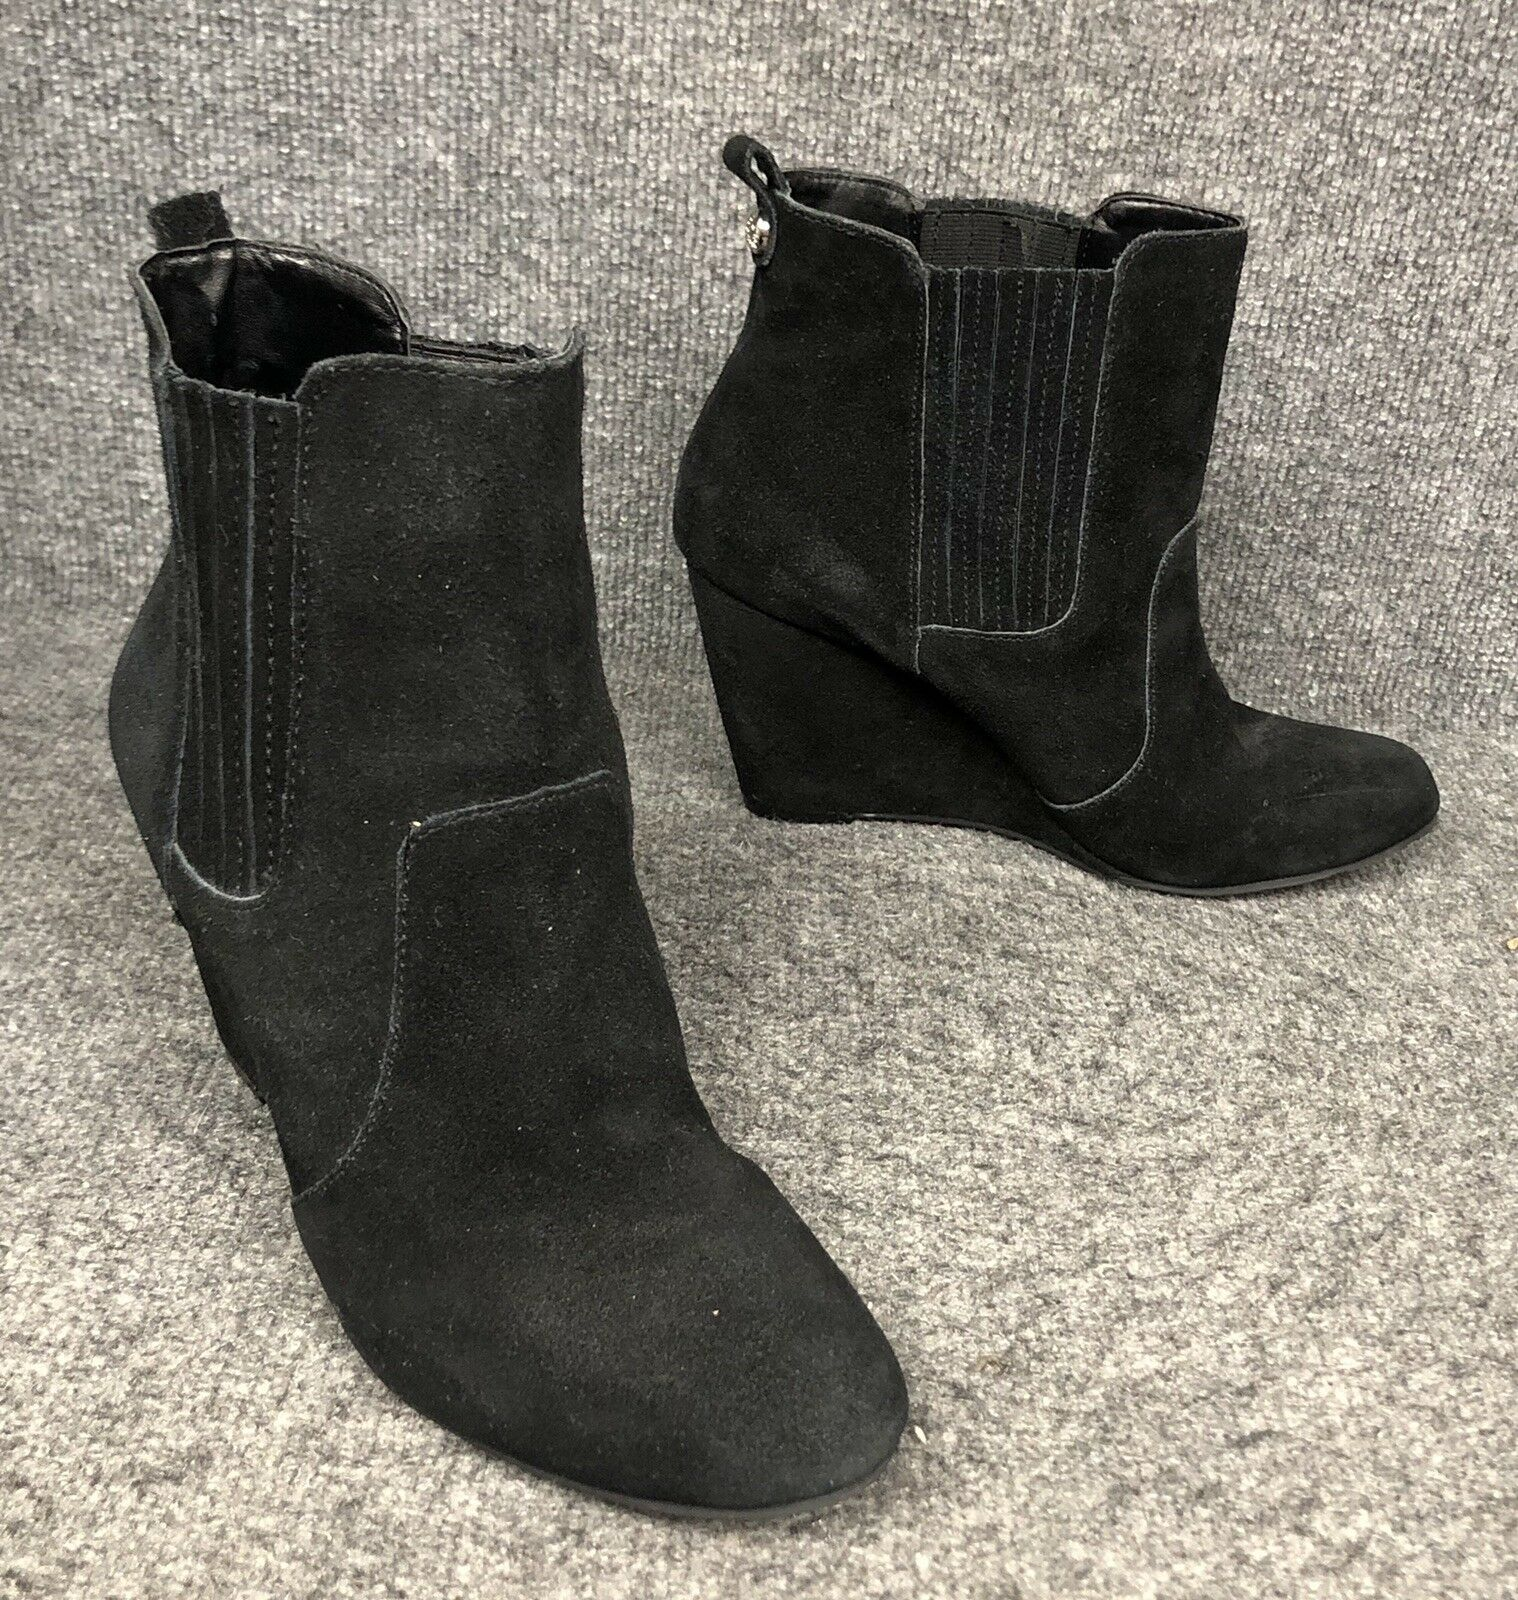 BCBGeneration BCBG Size 10B Black Suede Ankle Wedge Boots Booties In EUC